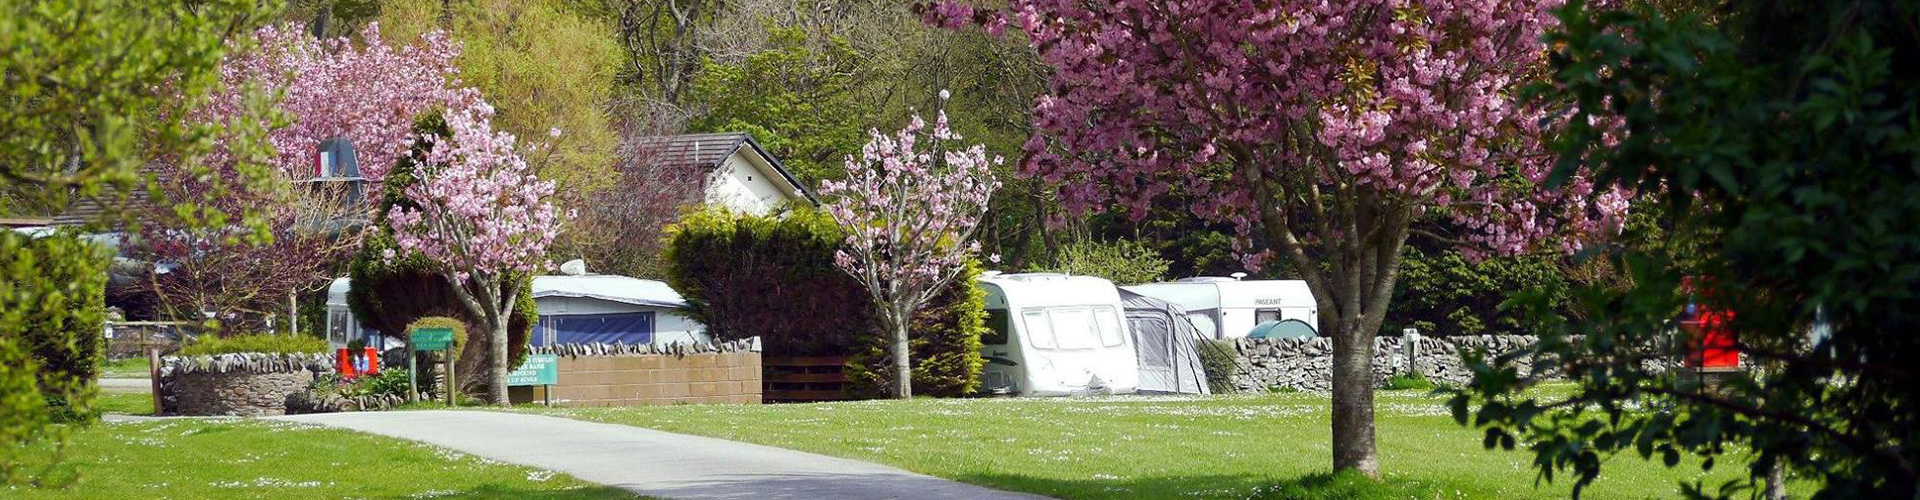 Seasonal Touring at Brighouse Bay Holiday Park